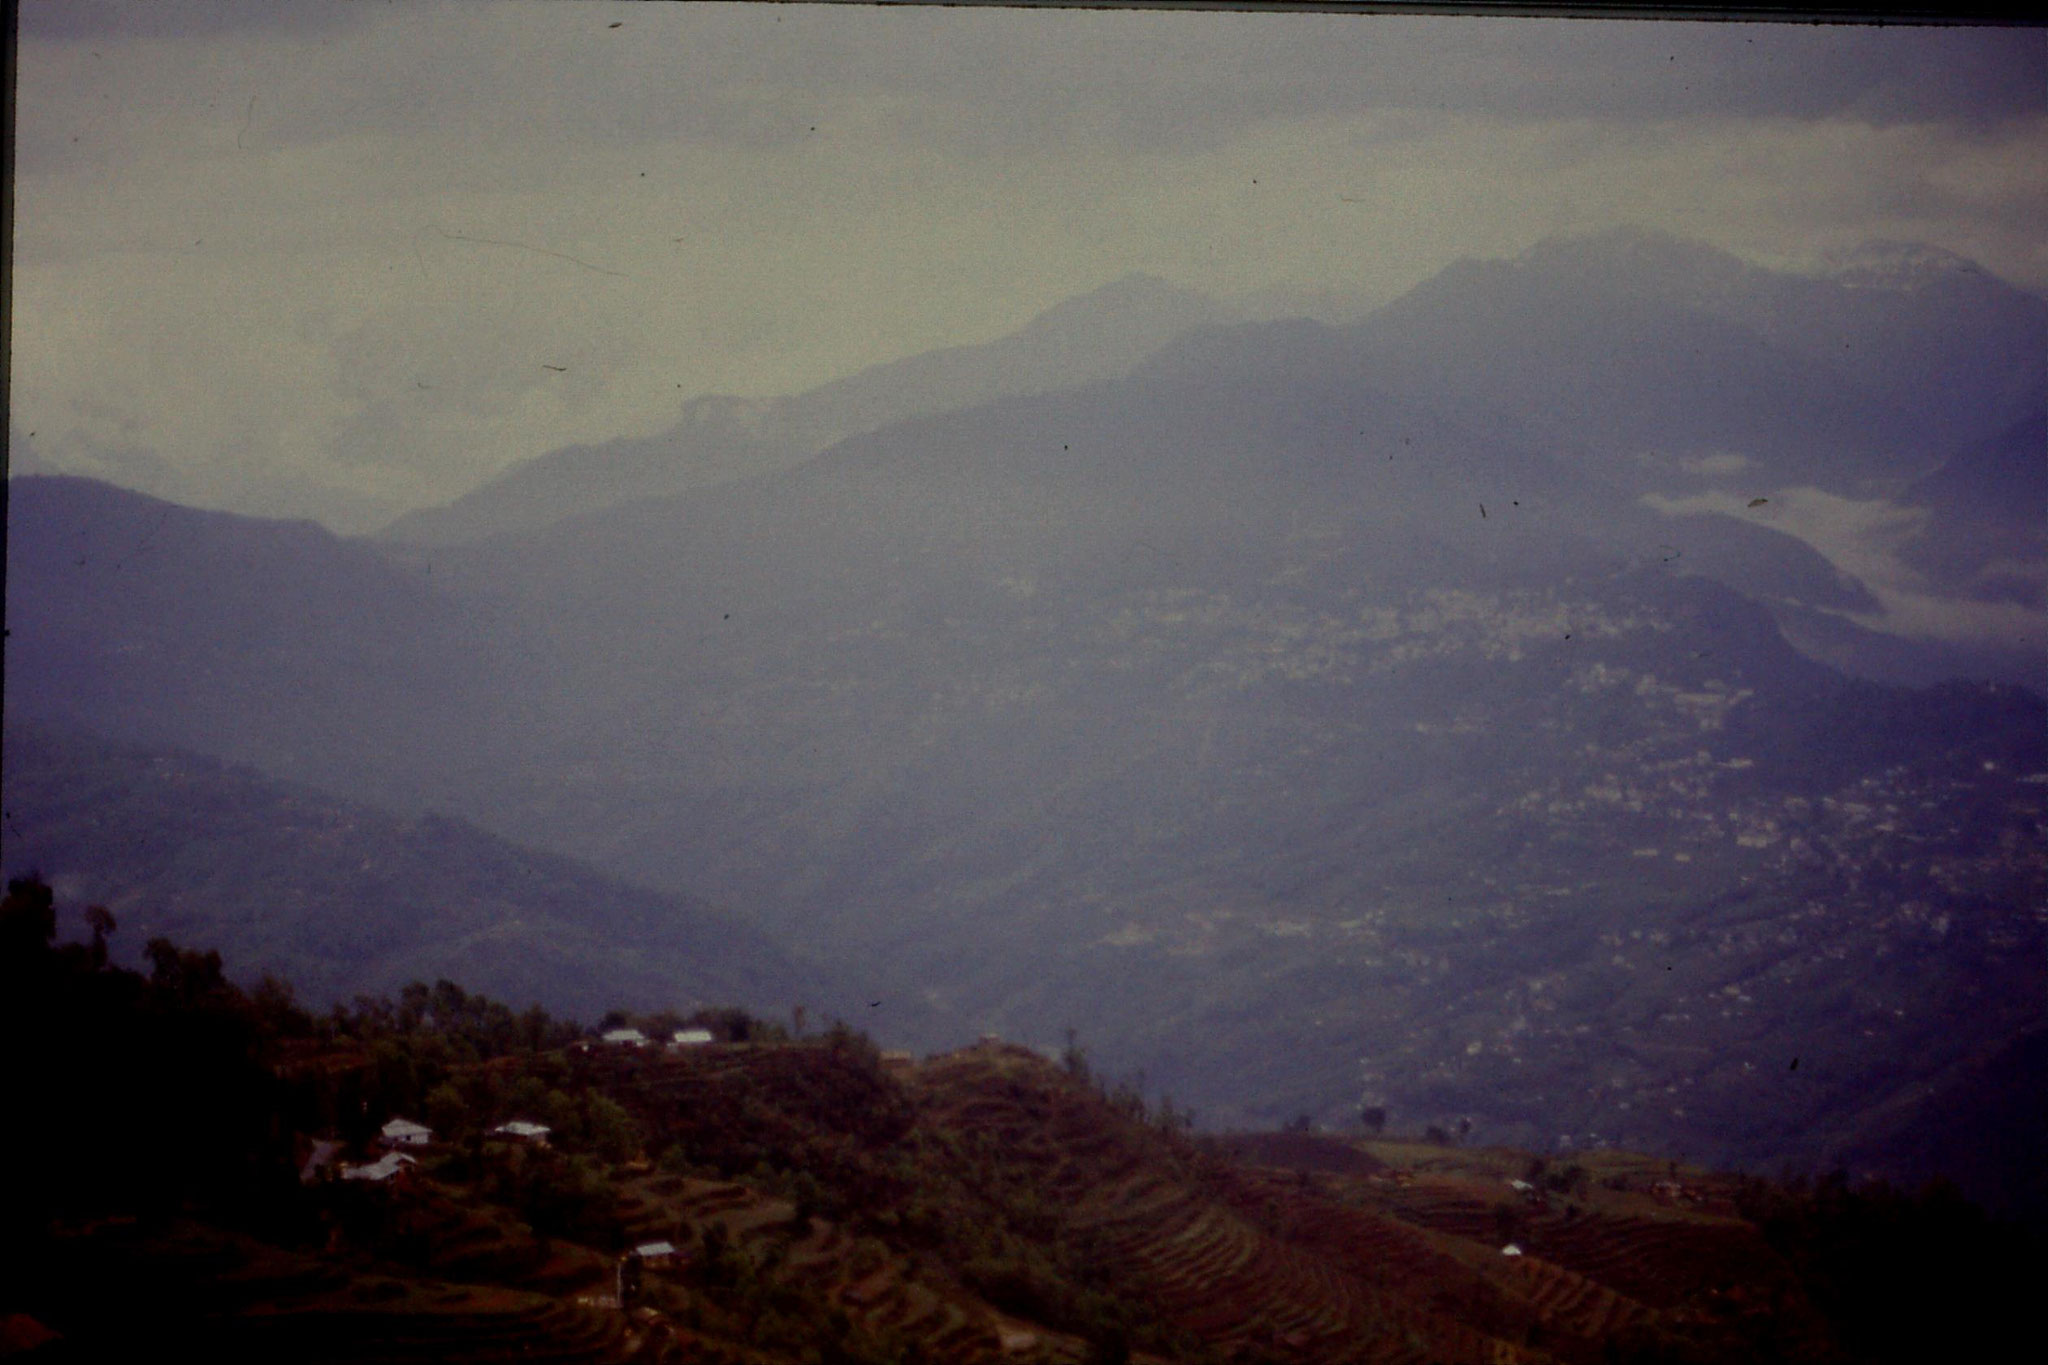 115/10: 23/4/1990 Rumtek - view of Gangtok and terrain